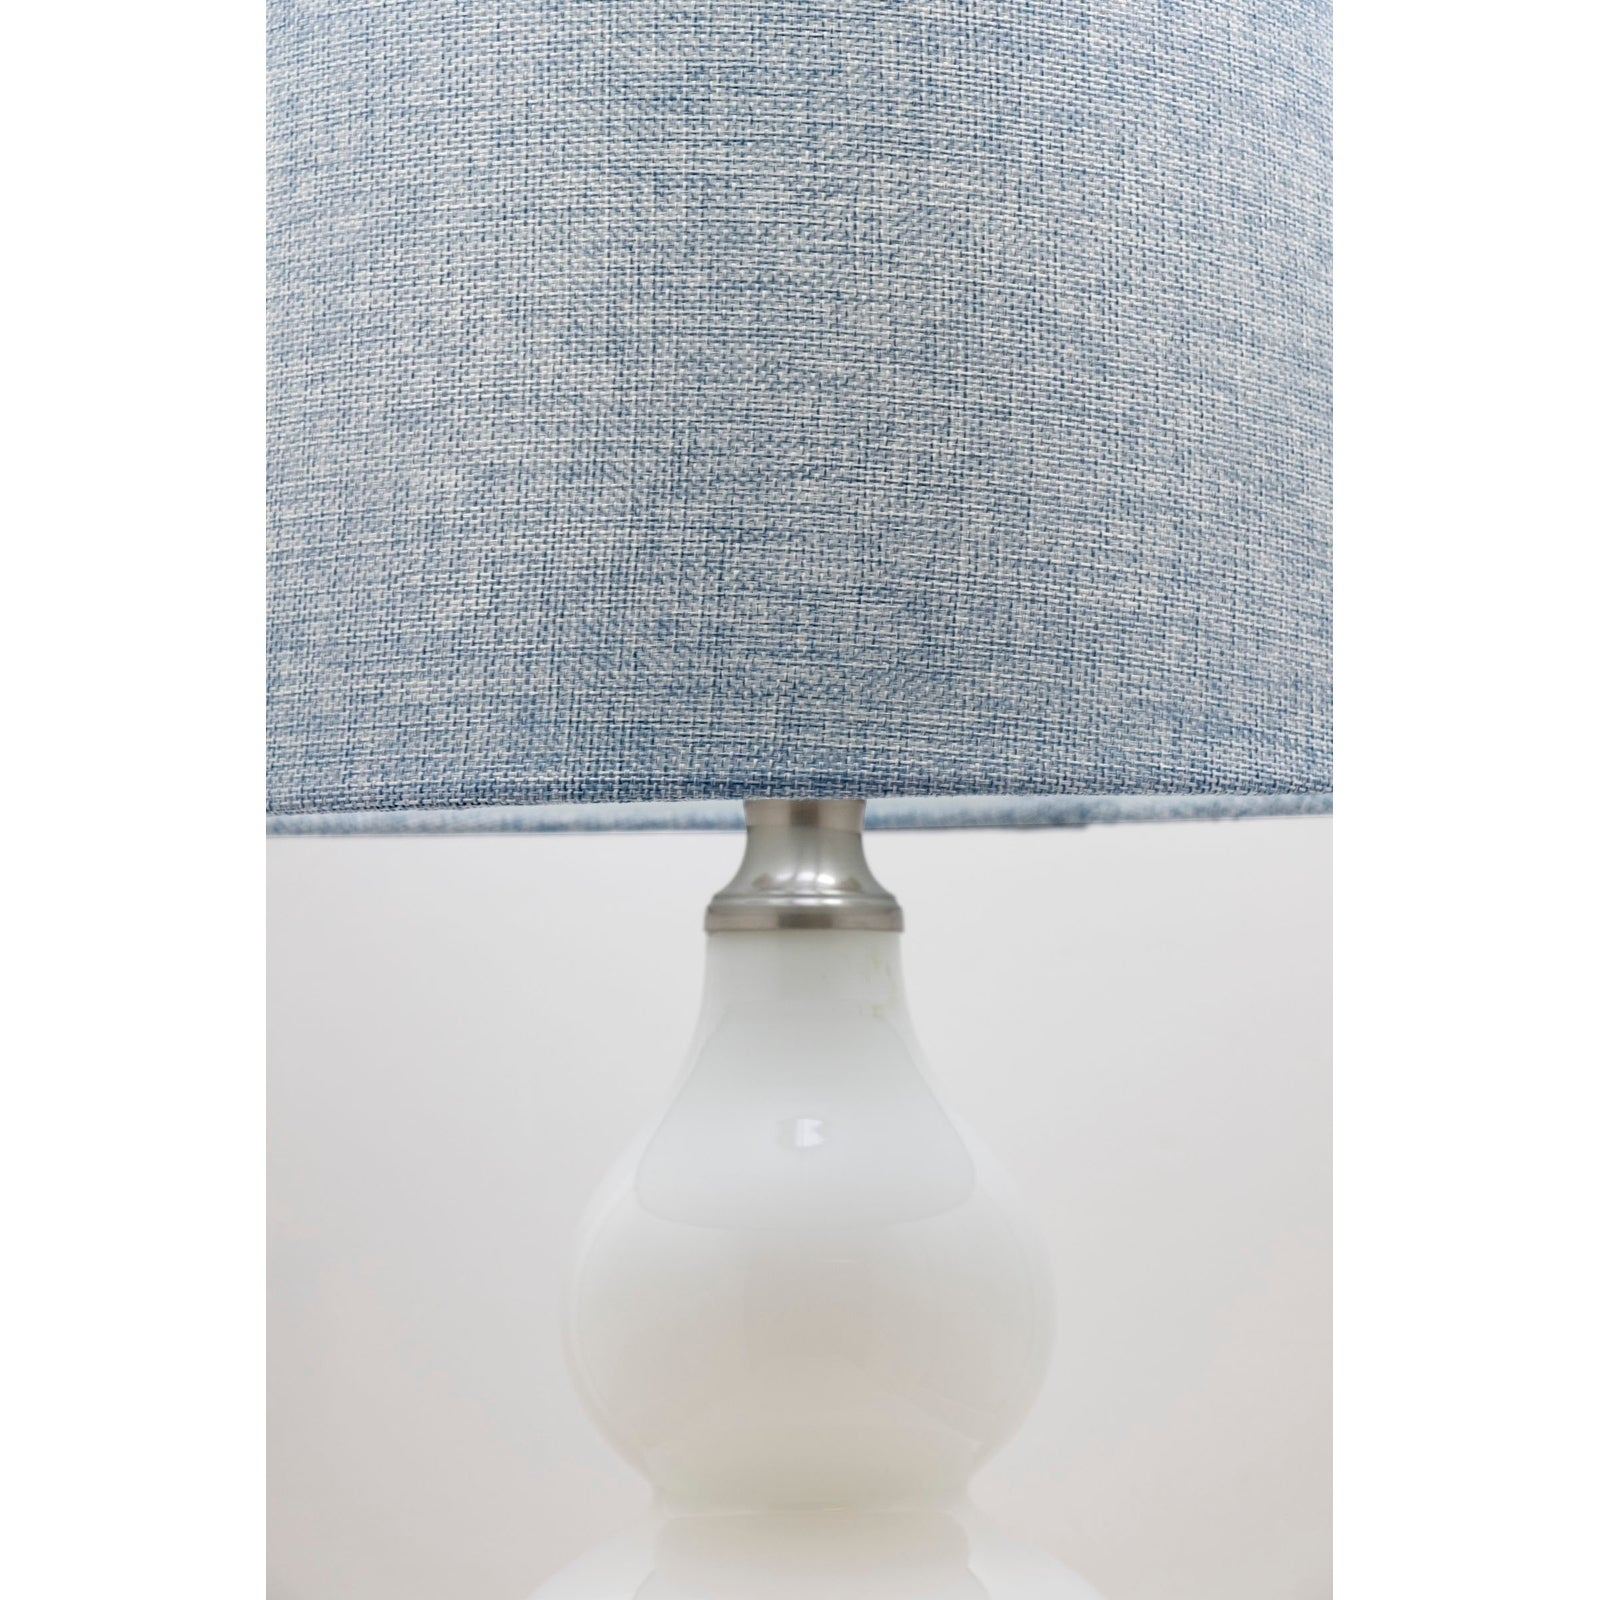 21 5 Glossy White Table Lamp Set W Blue Gray Textured Linen Tapered Drum Shades On Sale Overstock 29153368